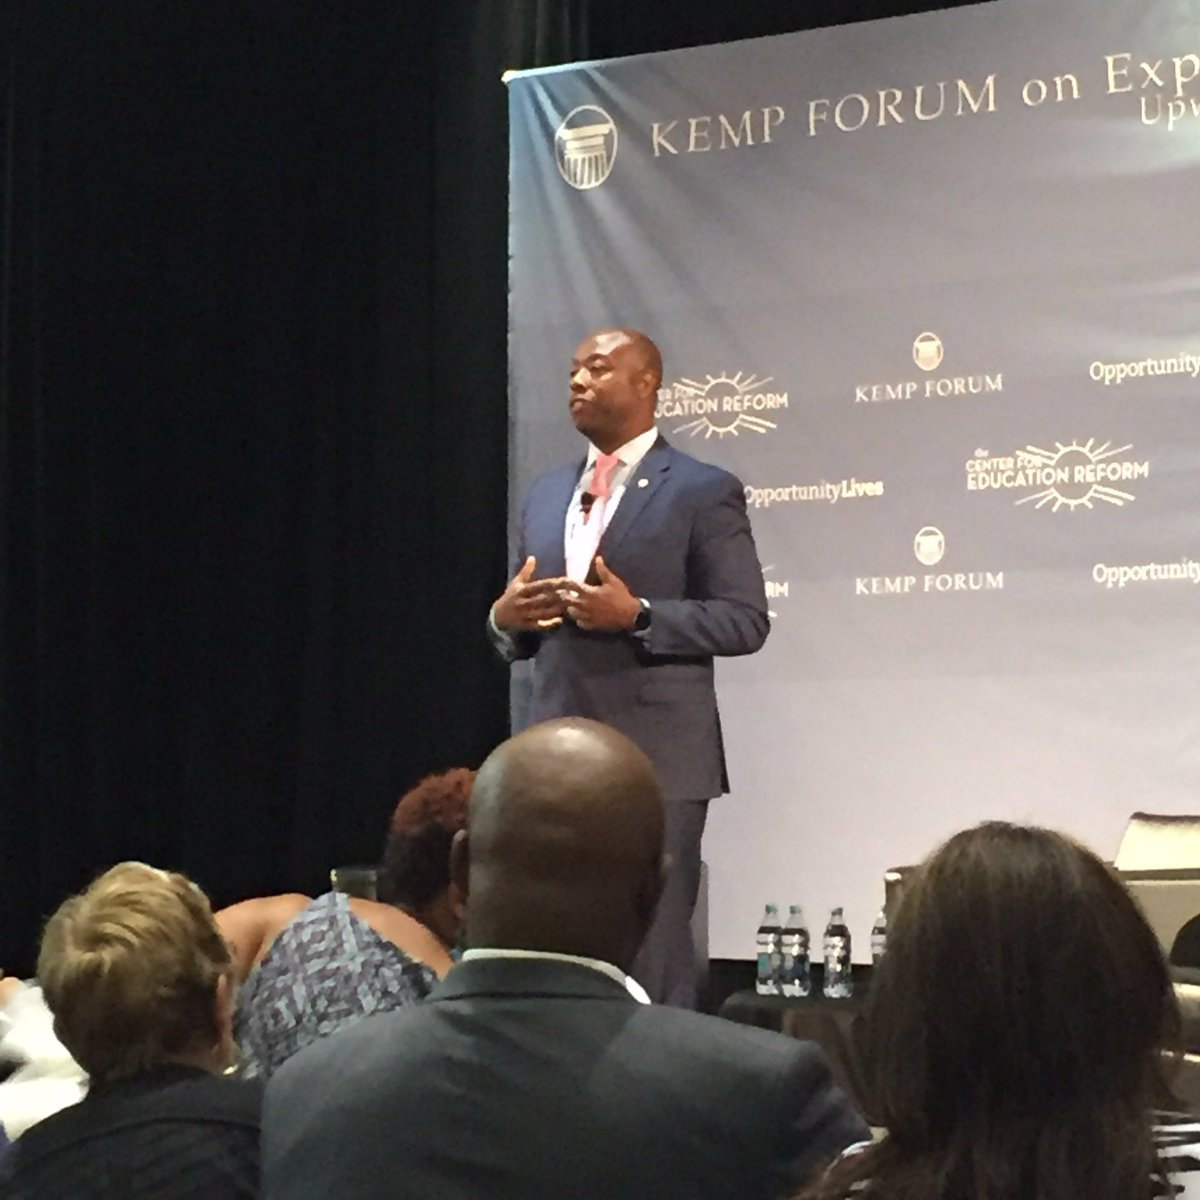 """I believe in love, dignity, work, and the power of education."" @SenatorTimScott #KempForum16 https://t.co/8Ykth9WYF2"